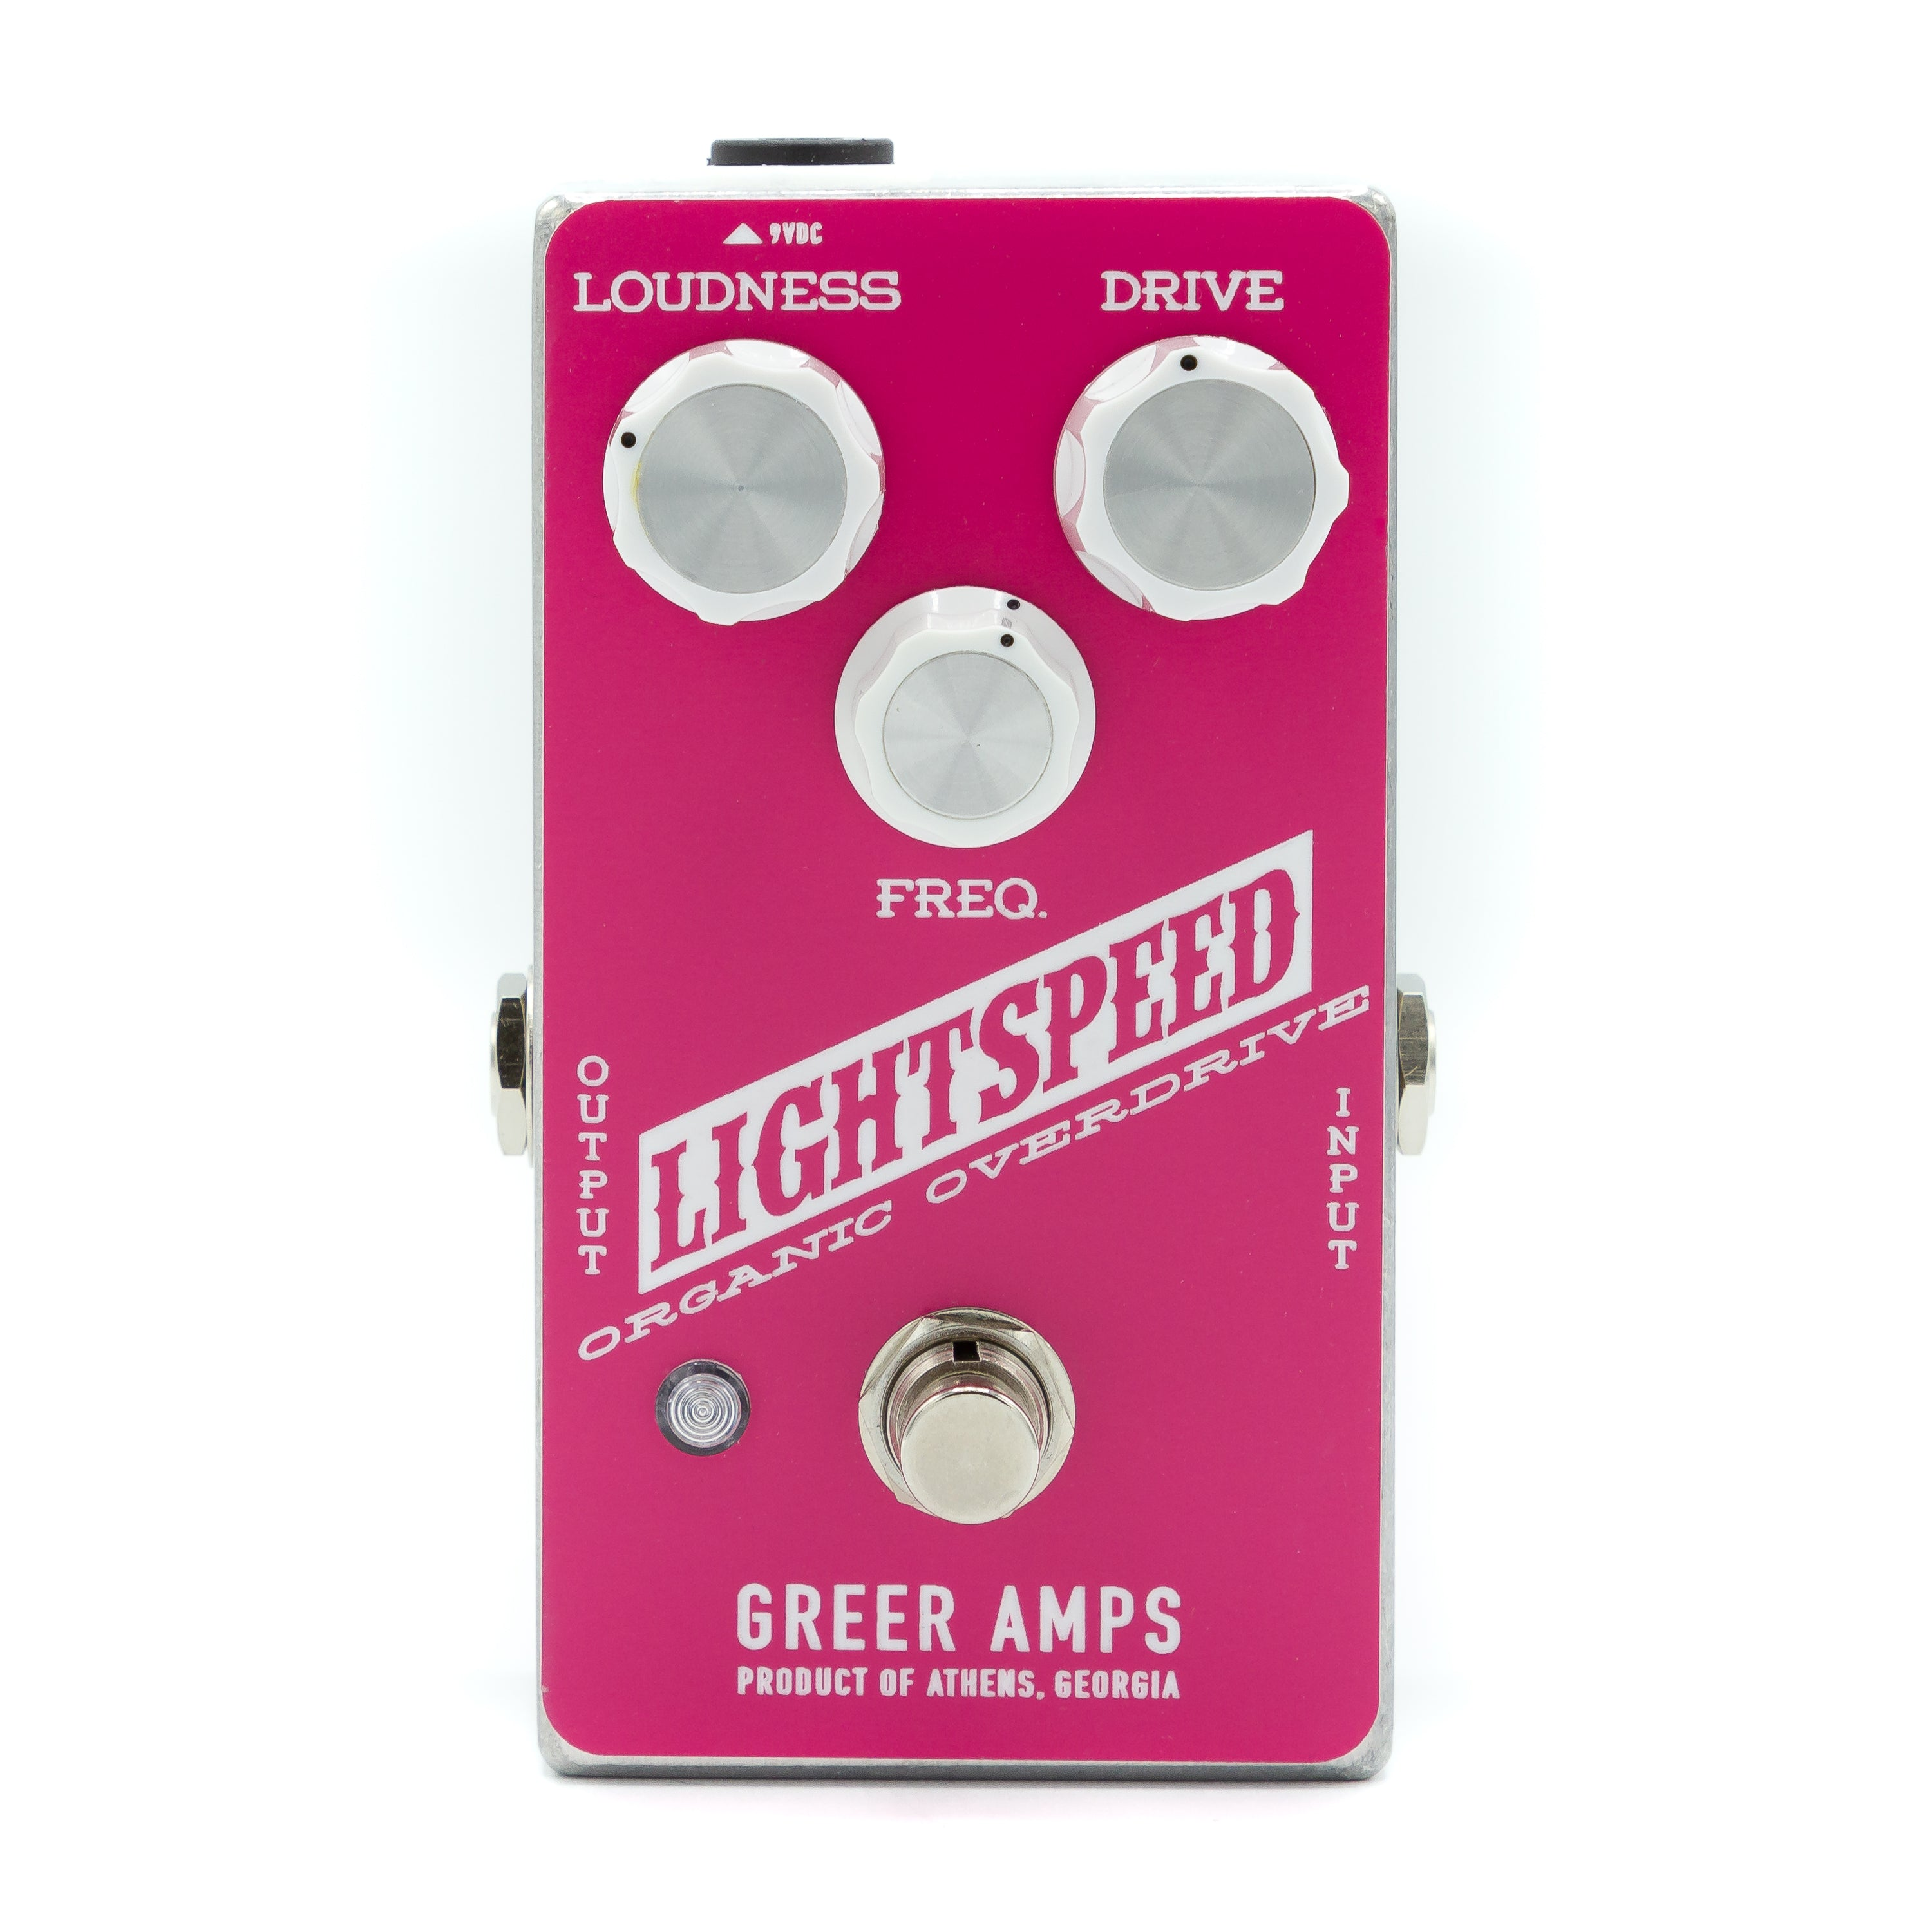 Greer Amps - Lightspeed Organic Overdrive Pink and White